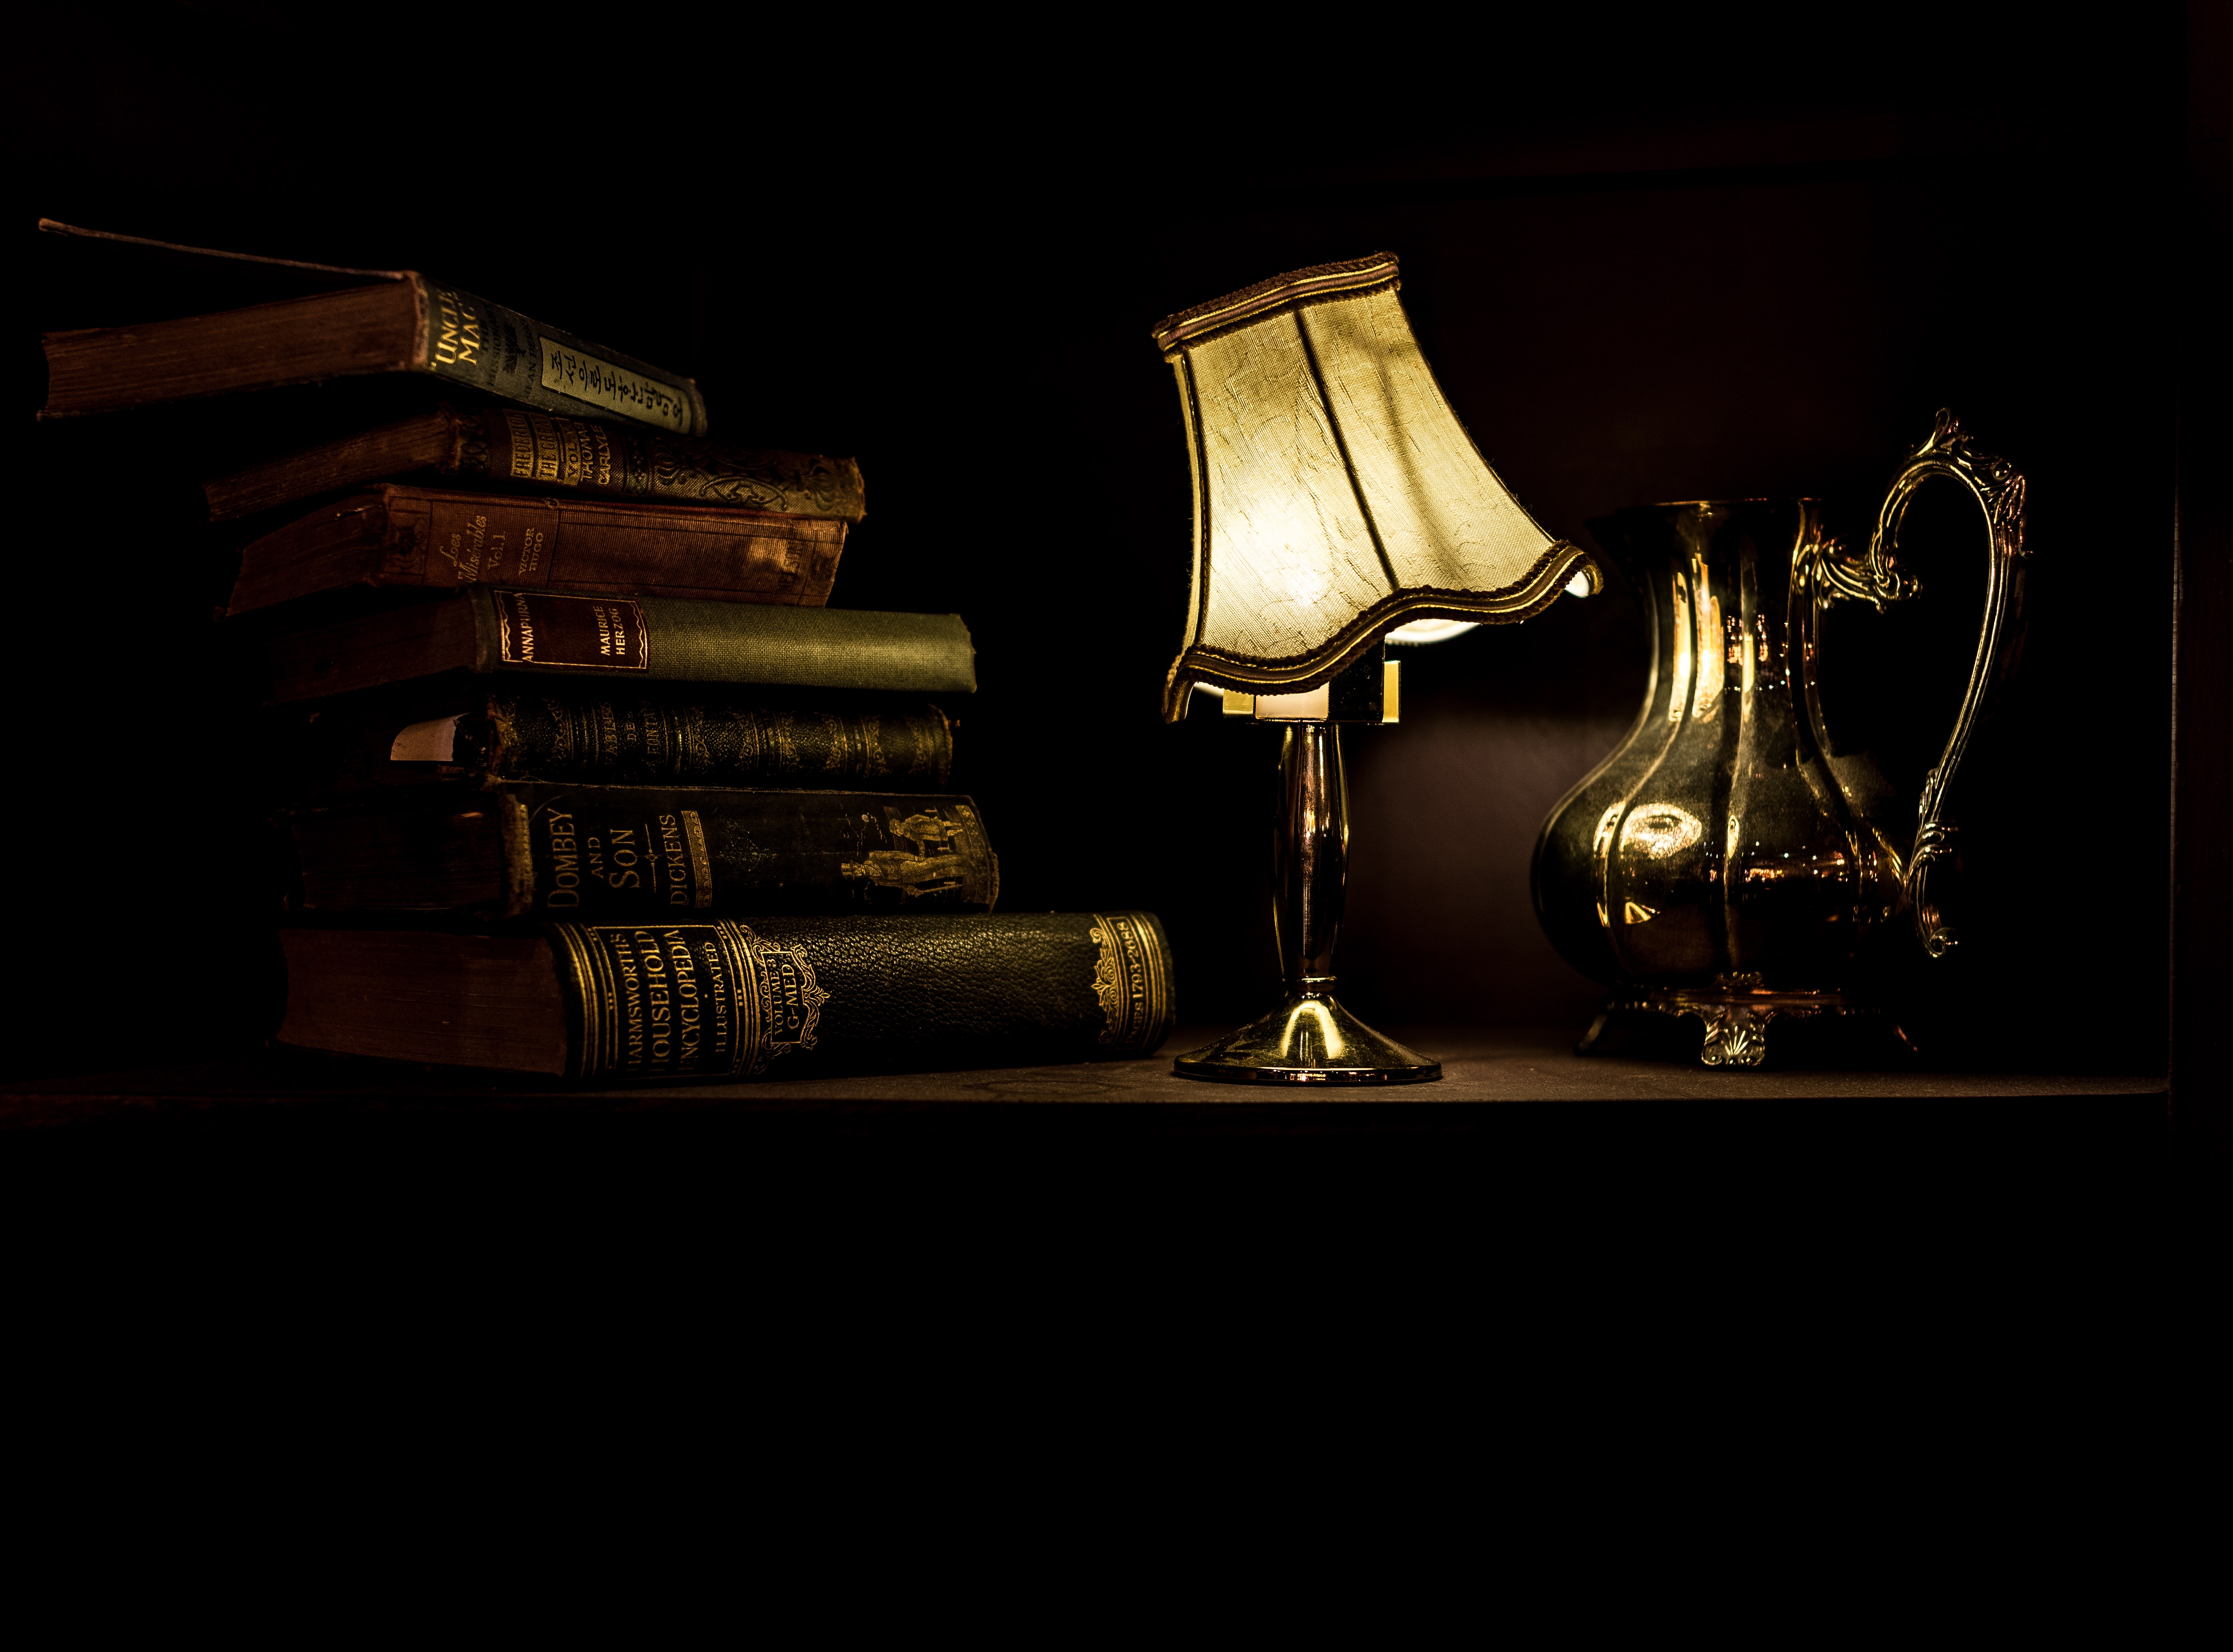 turned on desk lamp beside pile of books